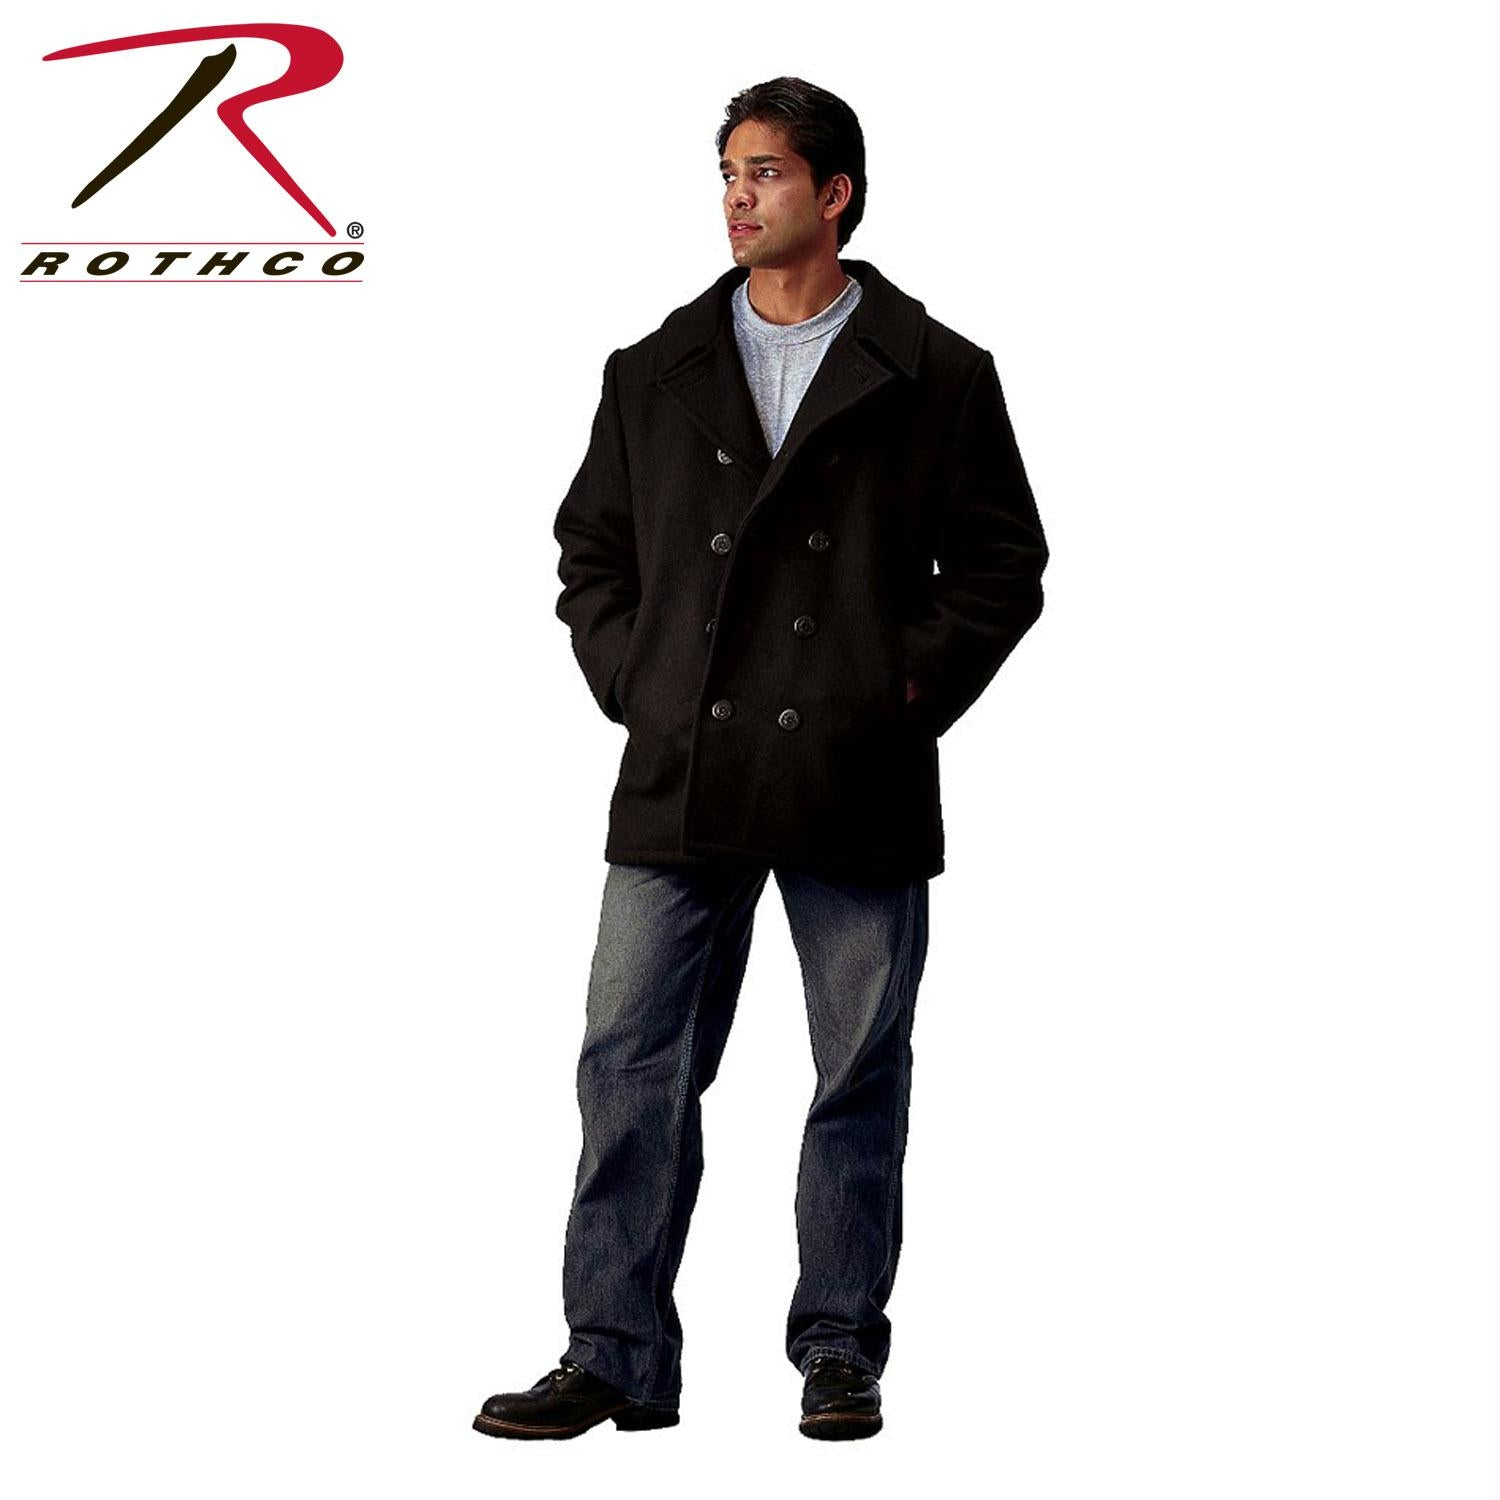 Rothco US Navy Type Pea Coat - Black / XL